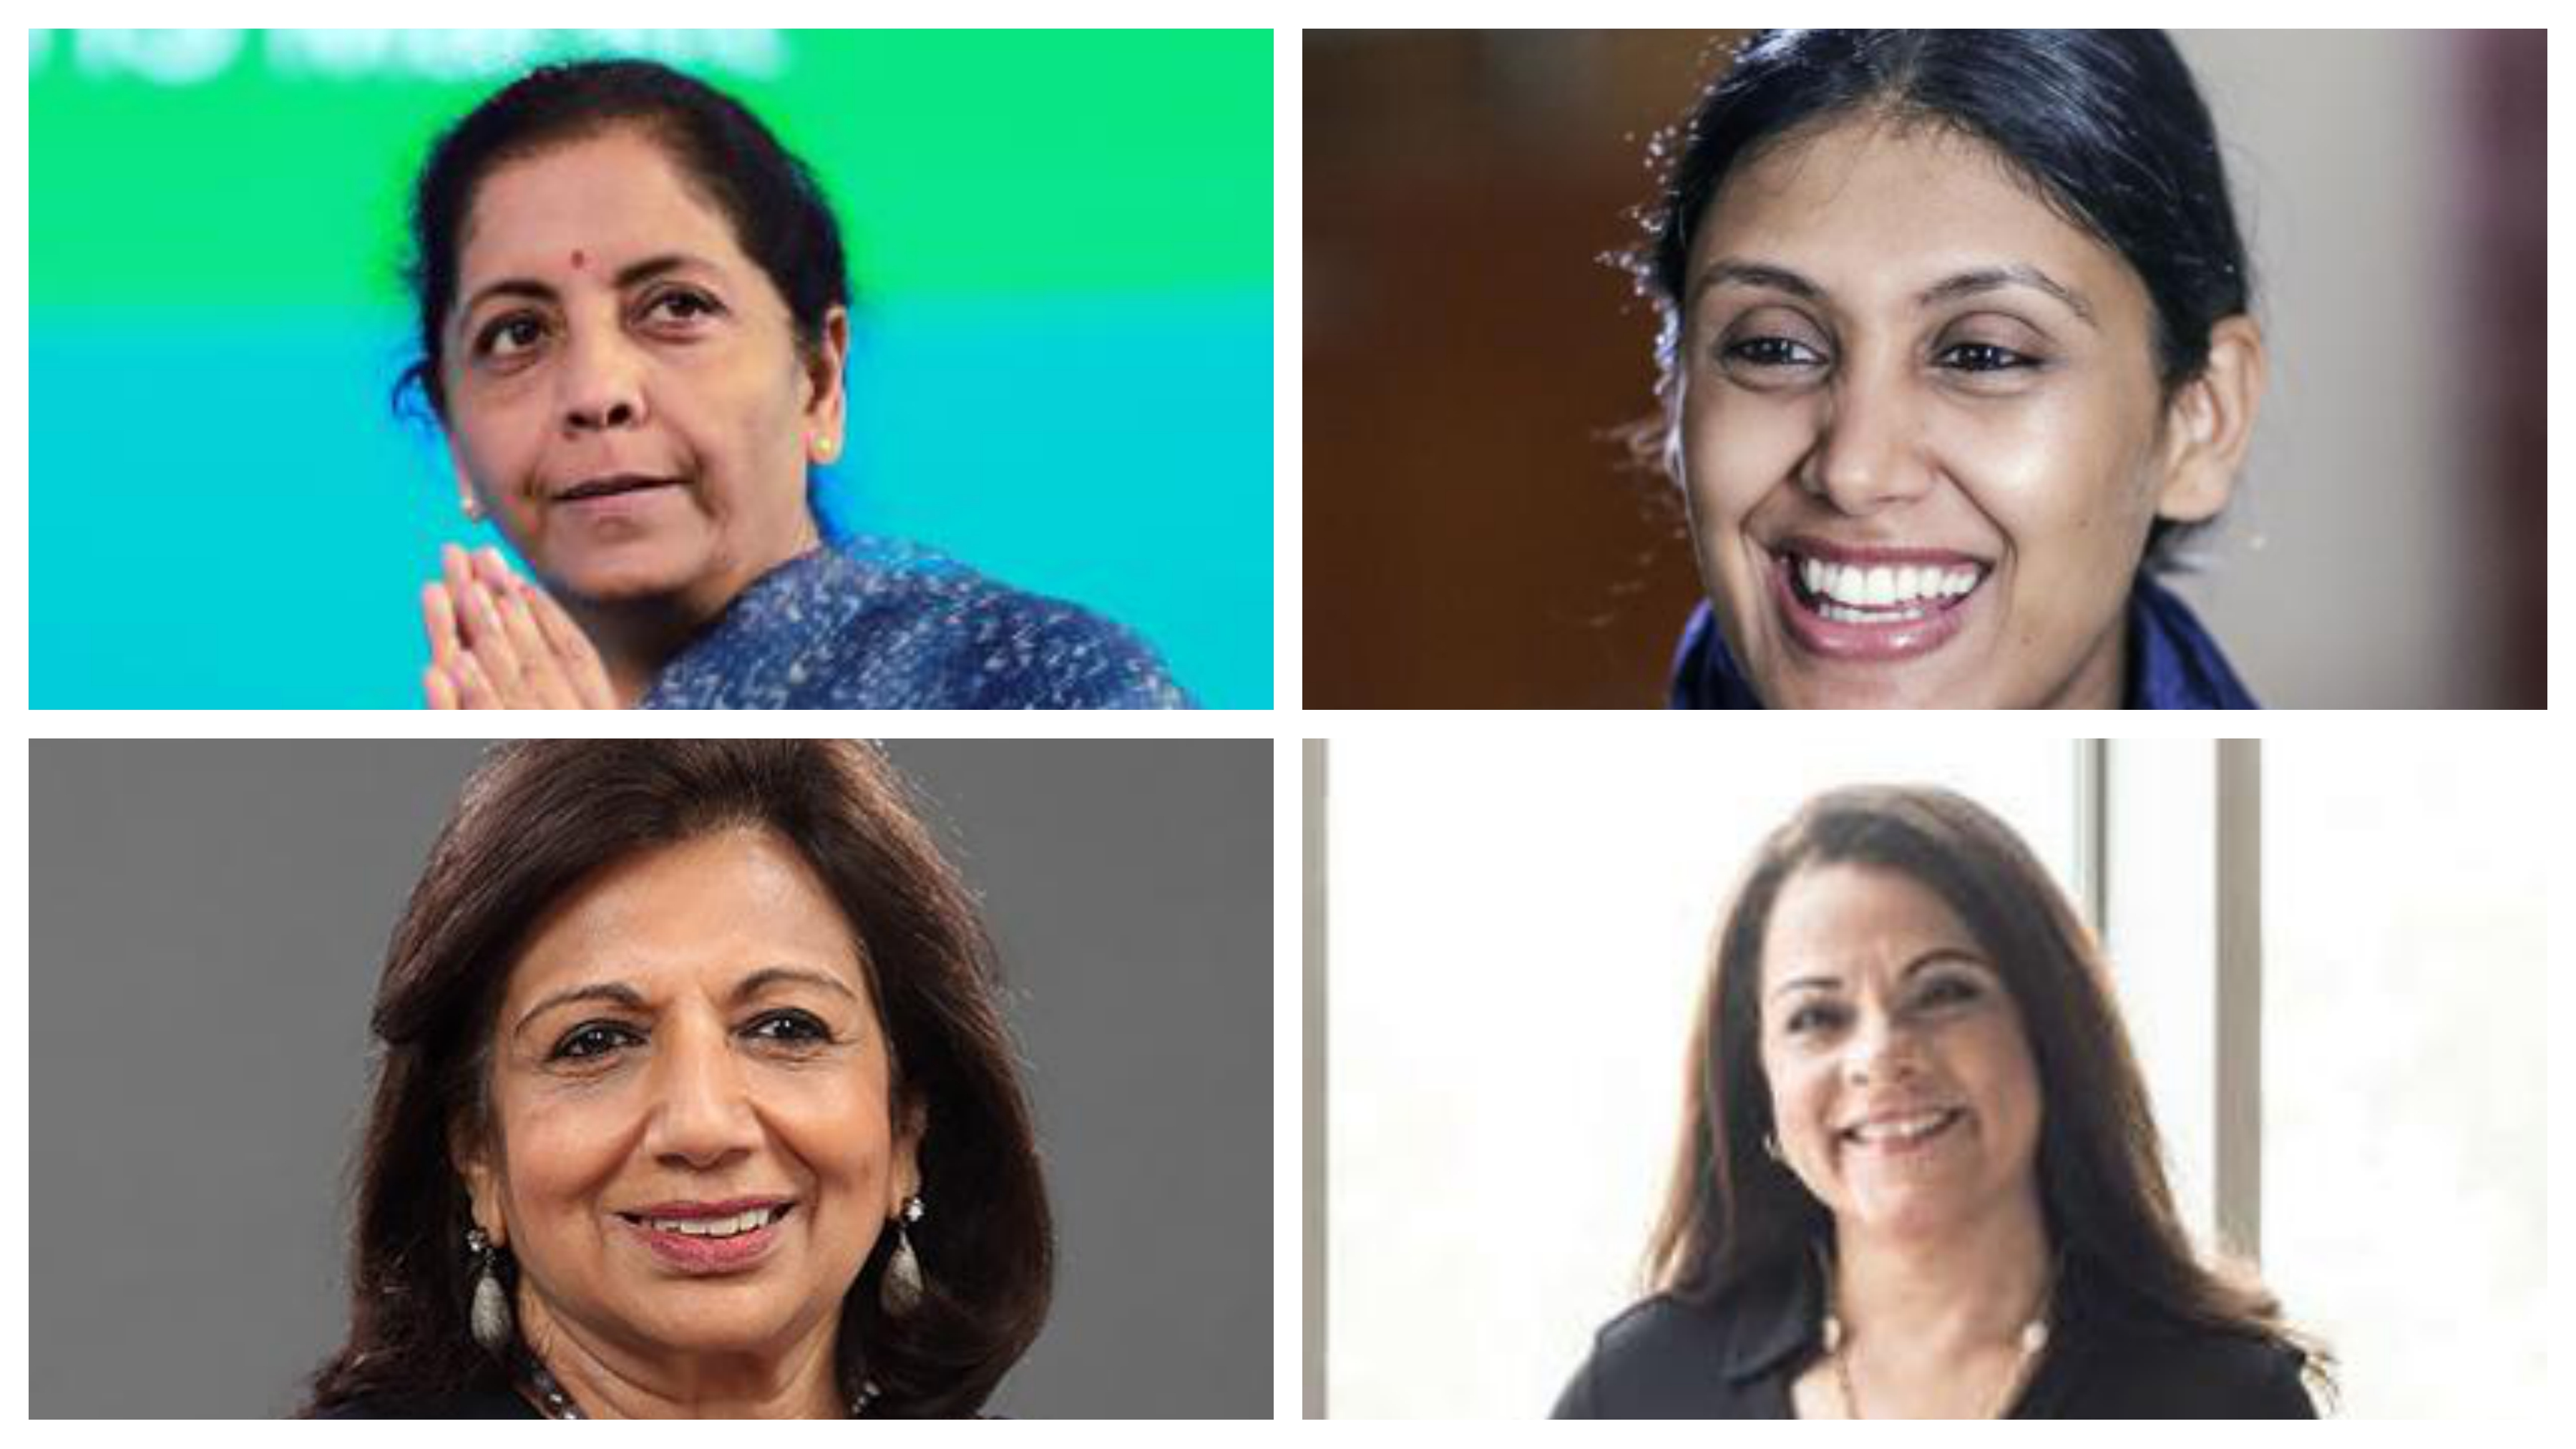 Indian Finance Minister Nirmala Sitharaman, HCL Corporation CEO and Executive Director Roshni Nadar Malhotra, Biocon Founder Kiran Mazumdar-Shaw and Landmark Group chairwoman and CEO Renuka Jagtiani